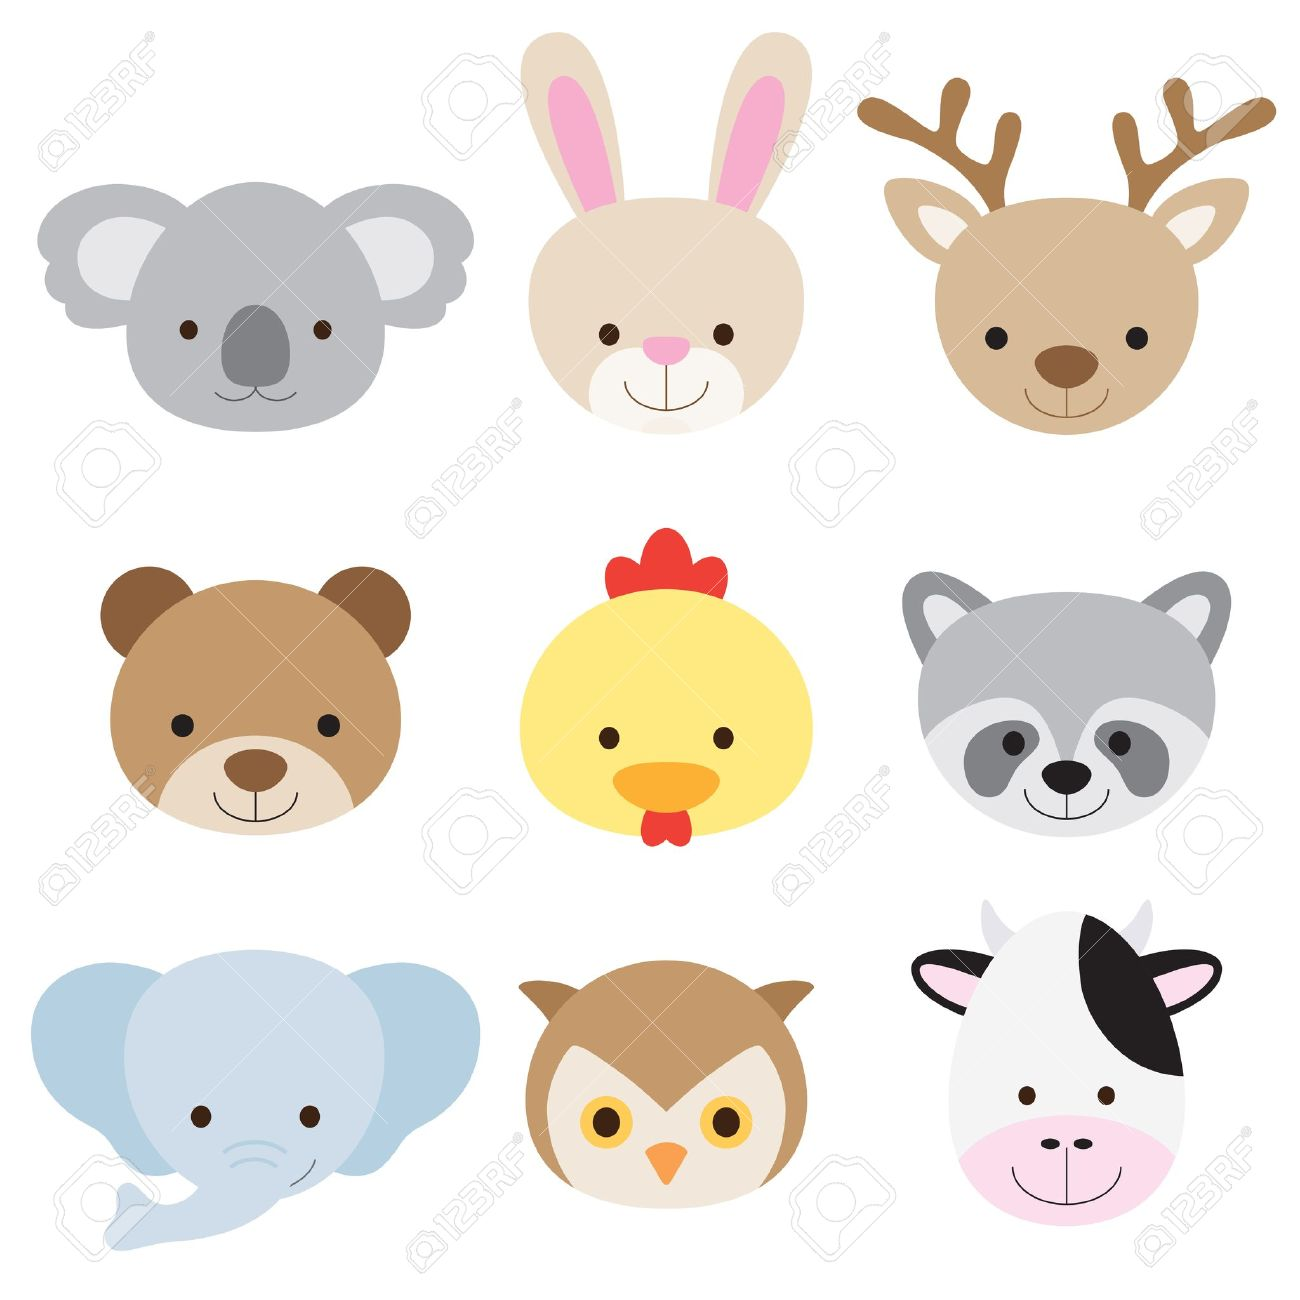 Vector illustration of animal faces including koala, rabbit, deer, bear, chicken, raccoon, elephant, owl, and cow Stock Vector - 21598607